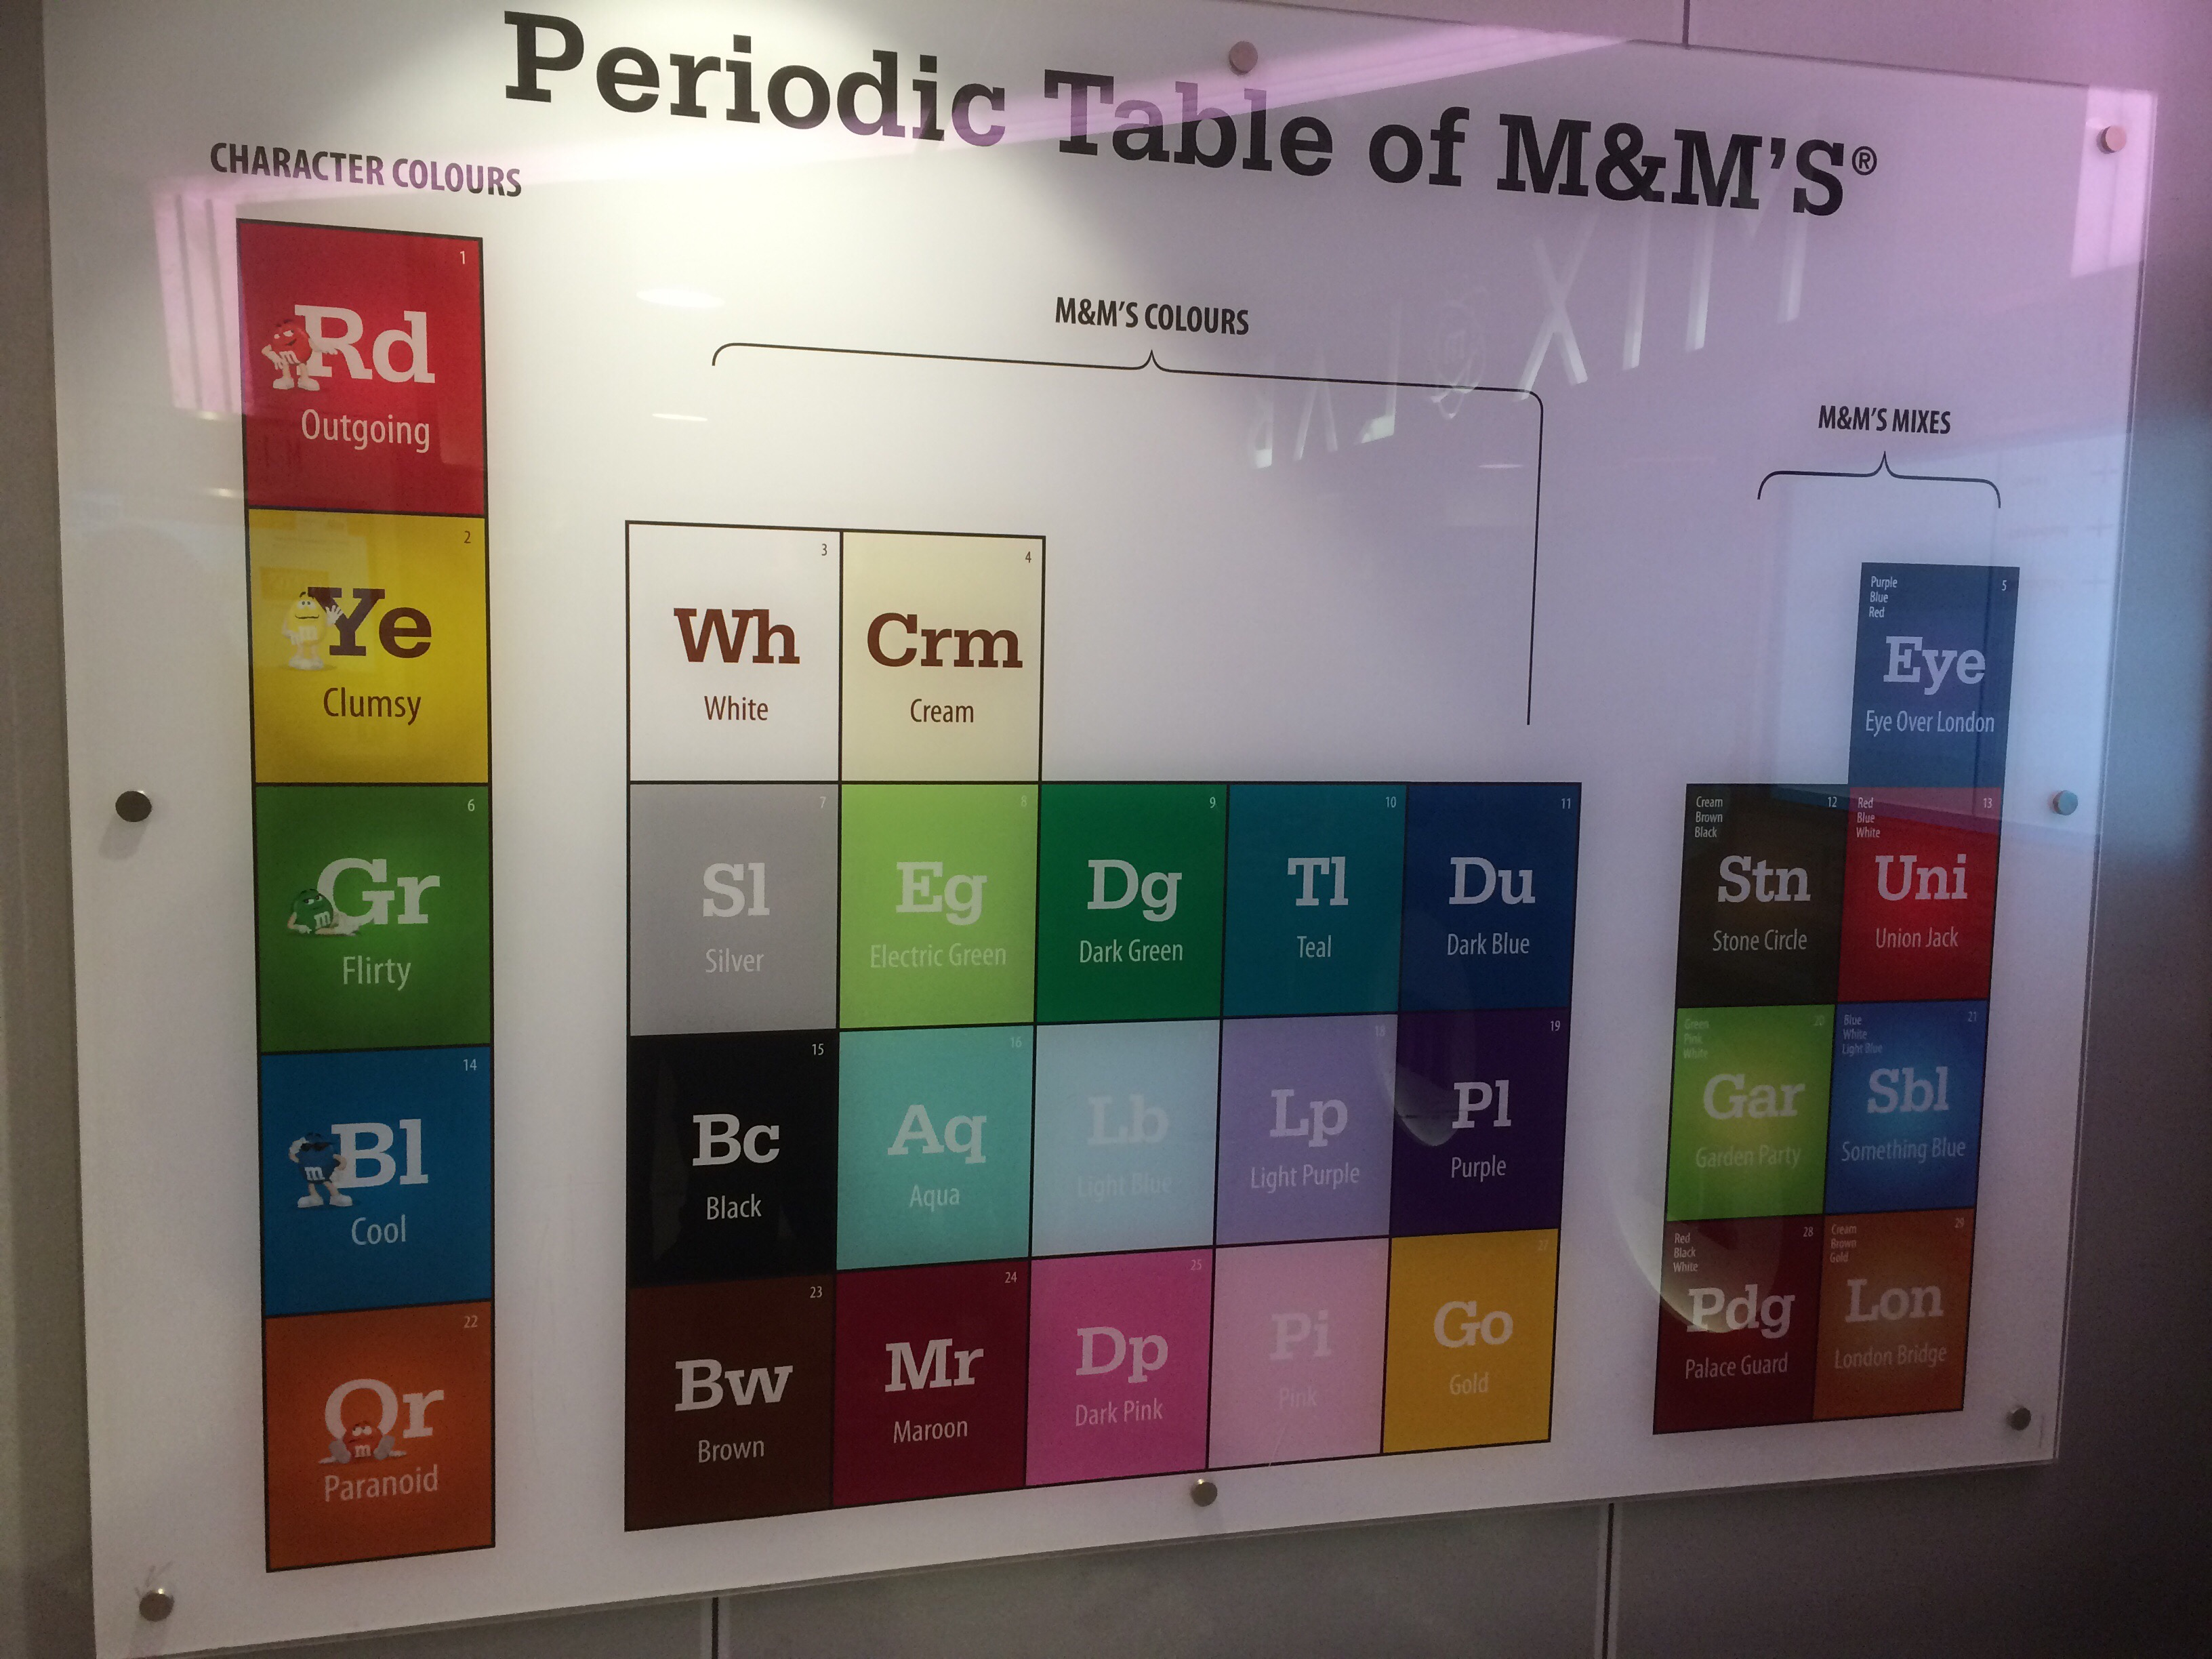 Periodic Table of M&Ms